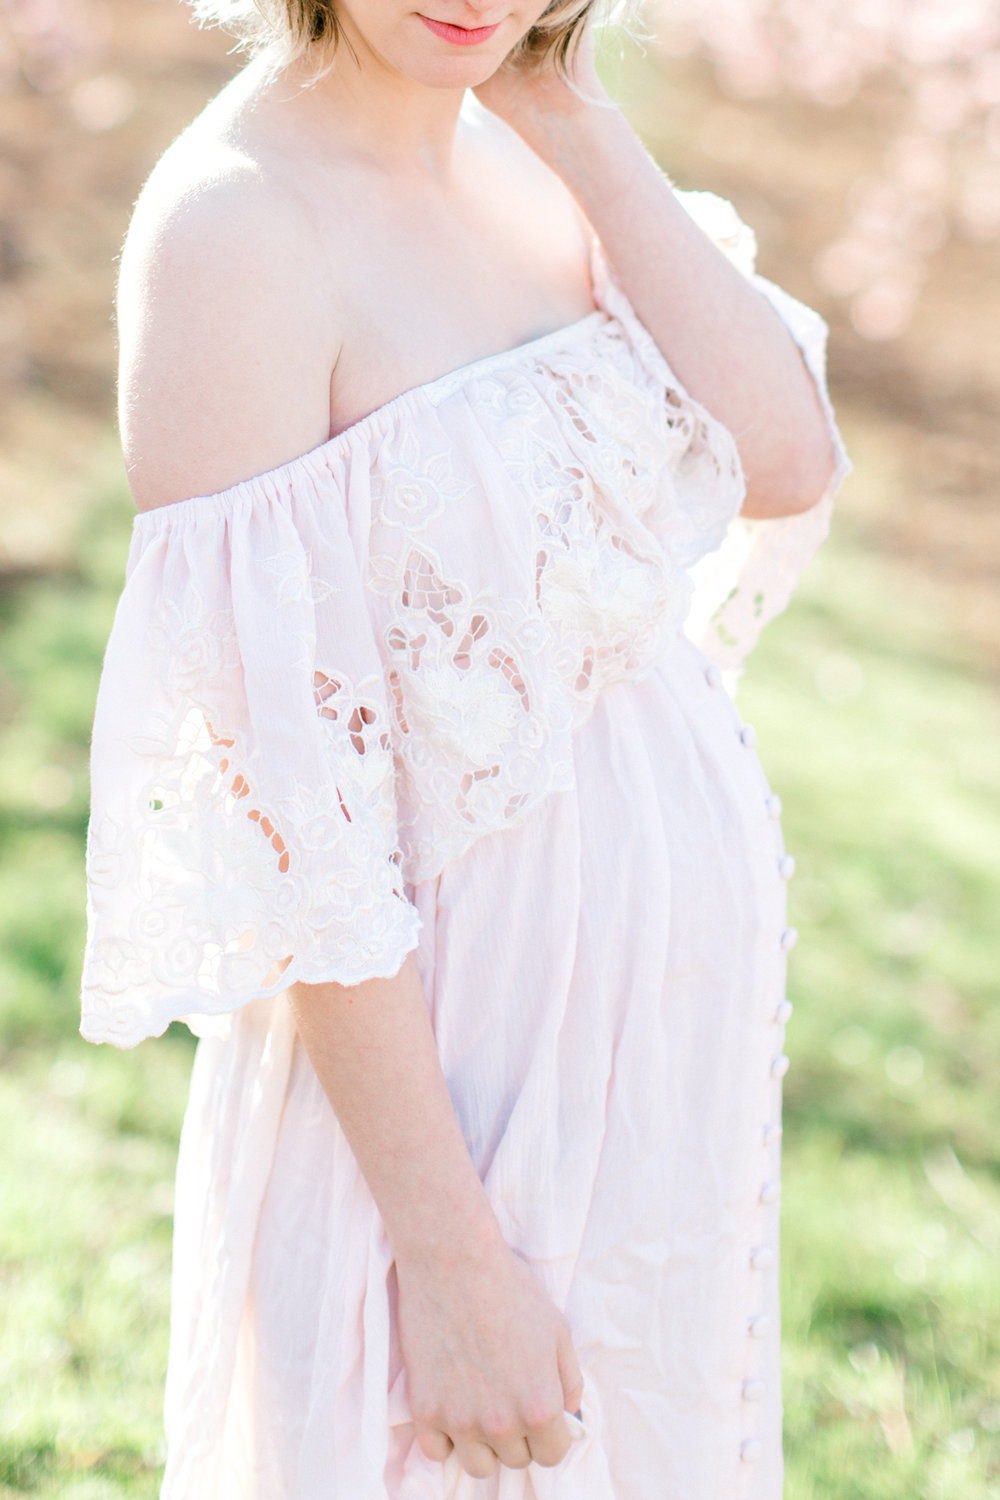 four corners photography peach blossom mini sessions peach blossom maternity session (5 of 25).jpg